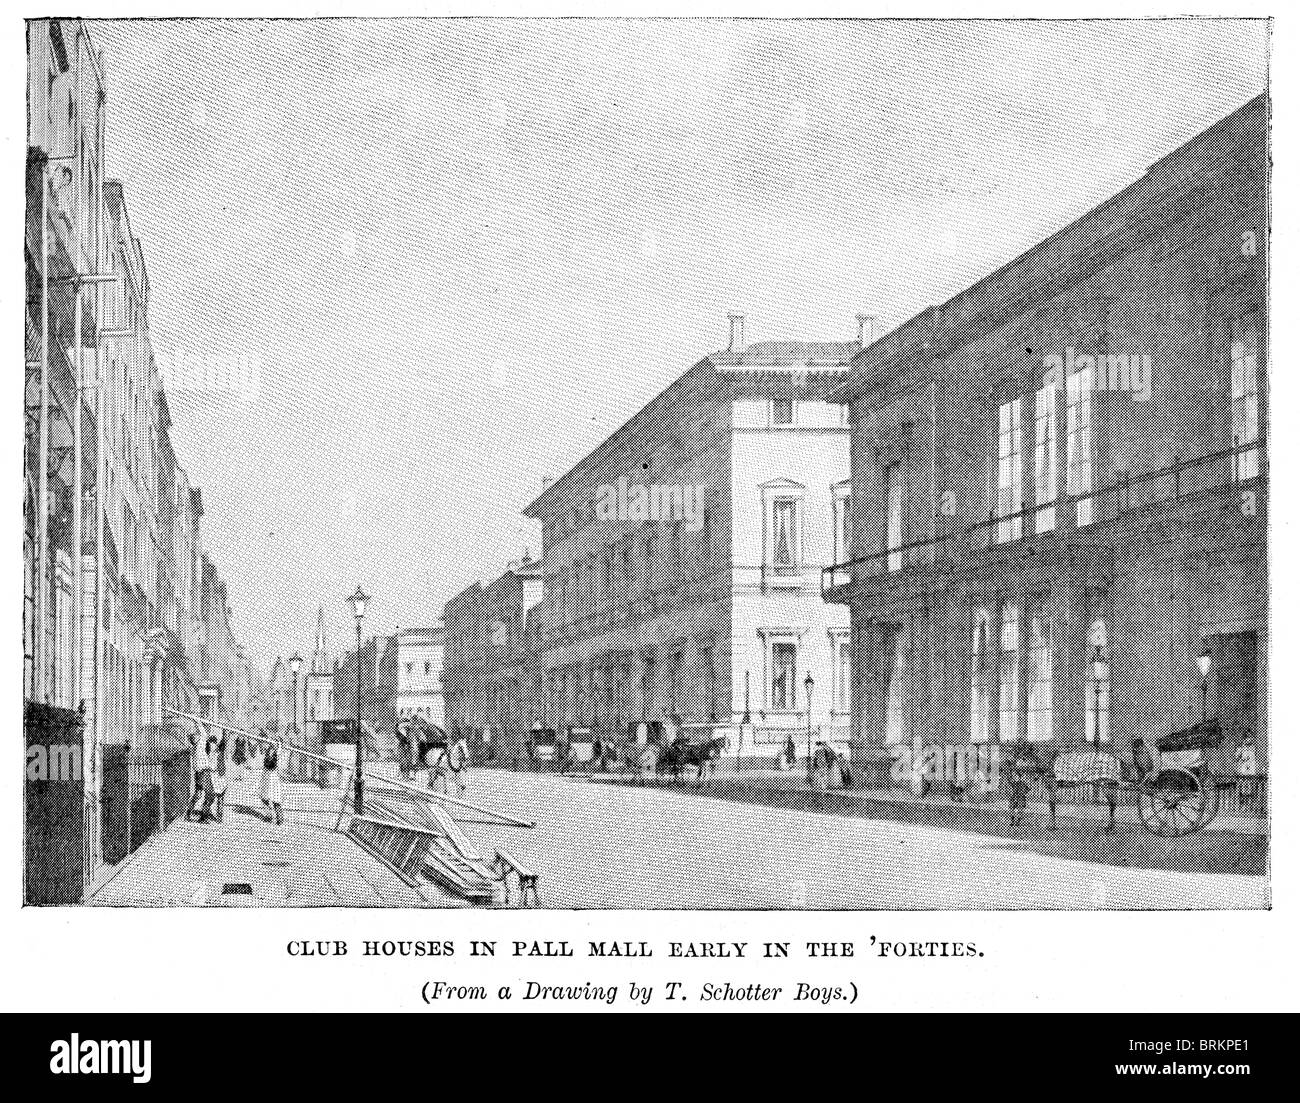 Club Houses in Pall Mall, London in the early 1840s. Pall Mall is best known for being the home to various gentlemen's - Stock Image